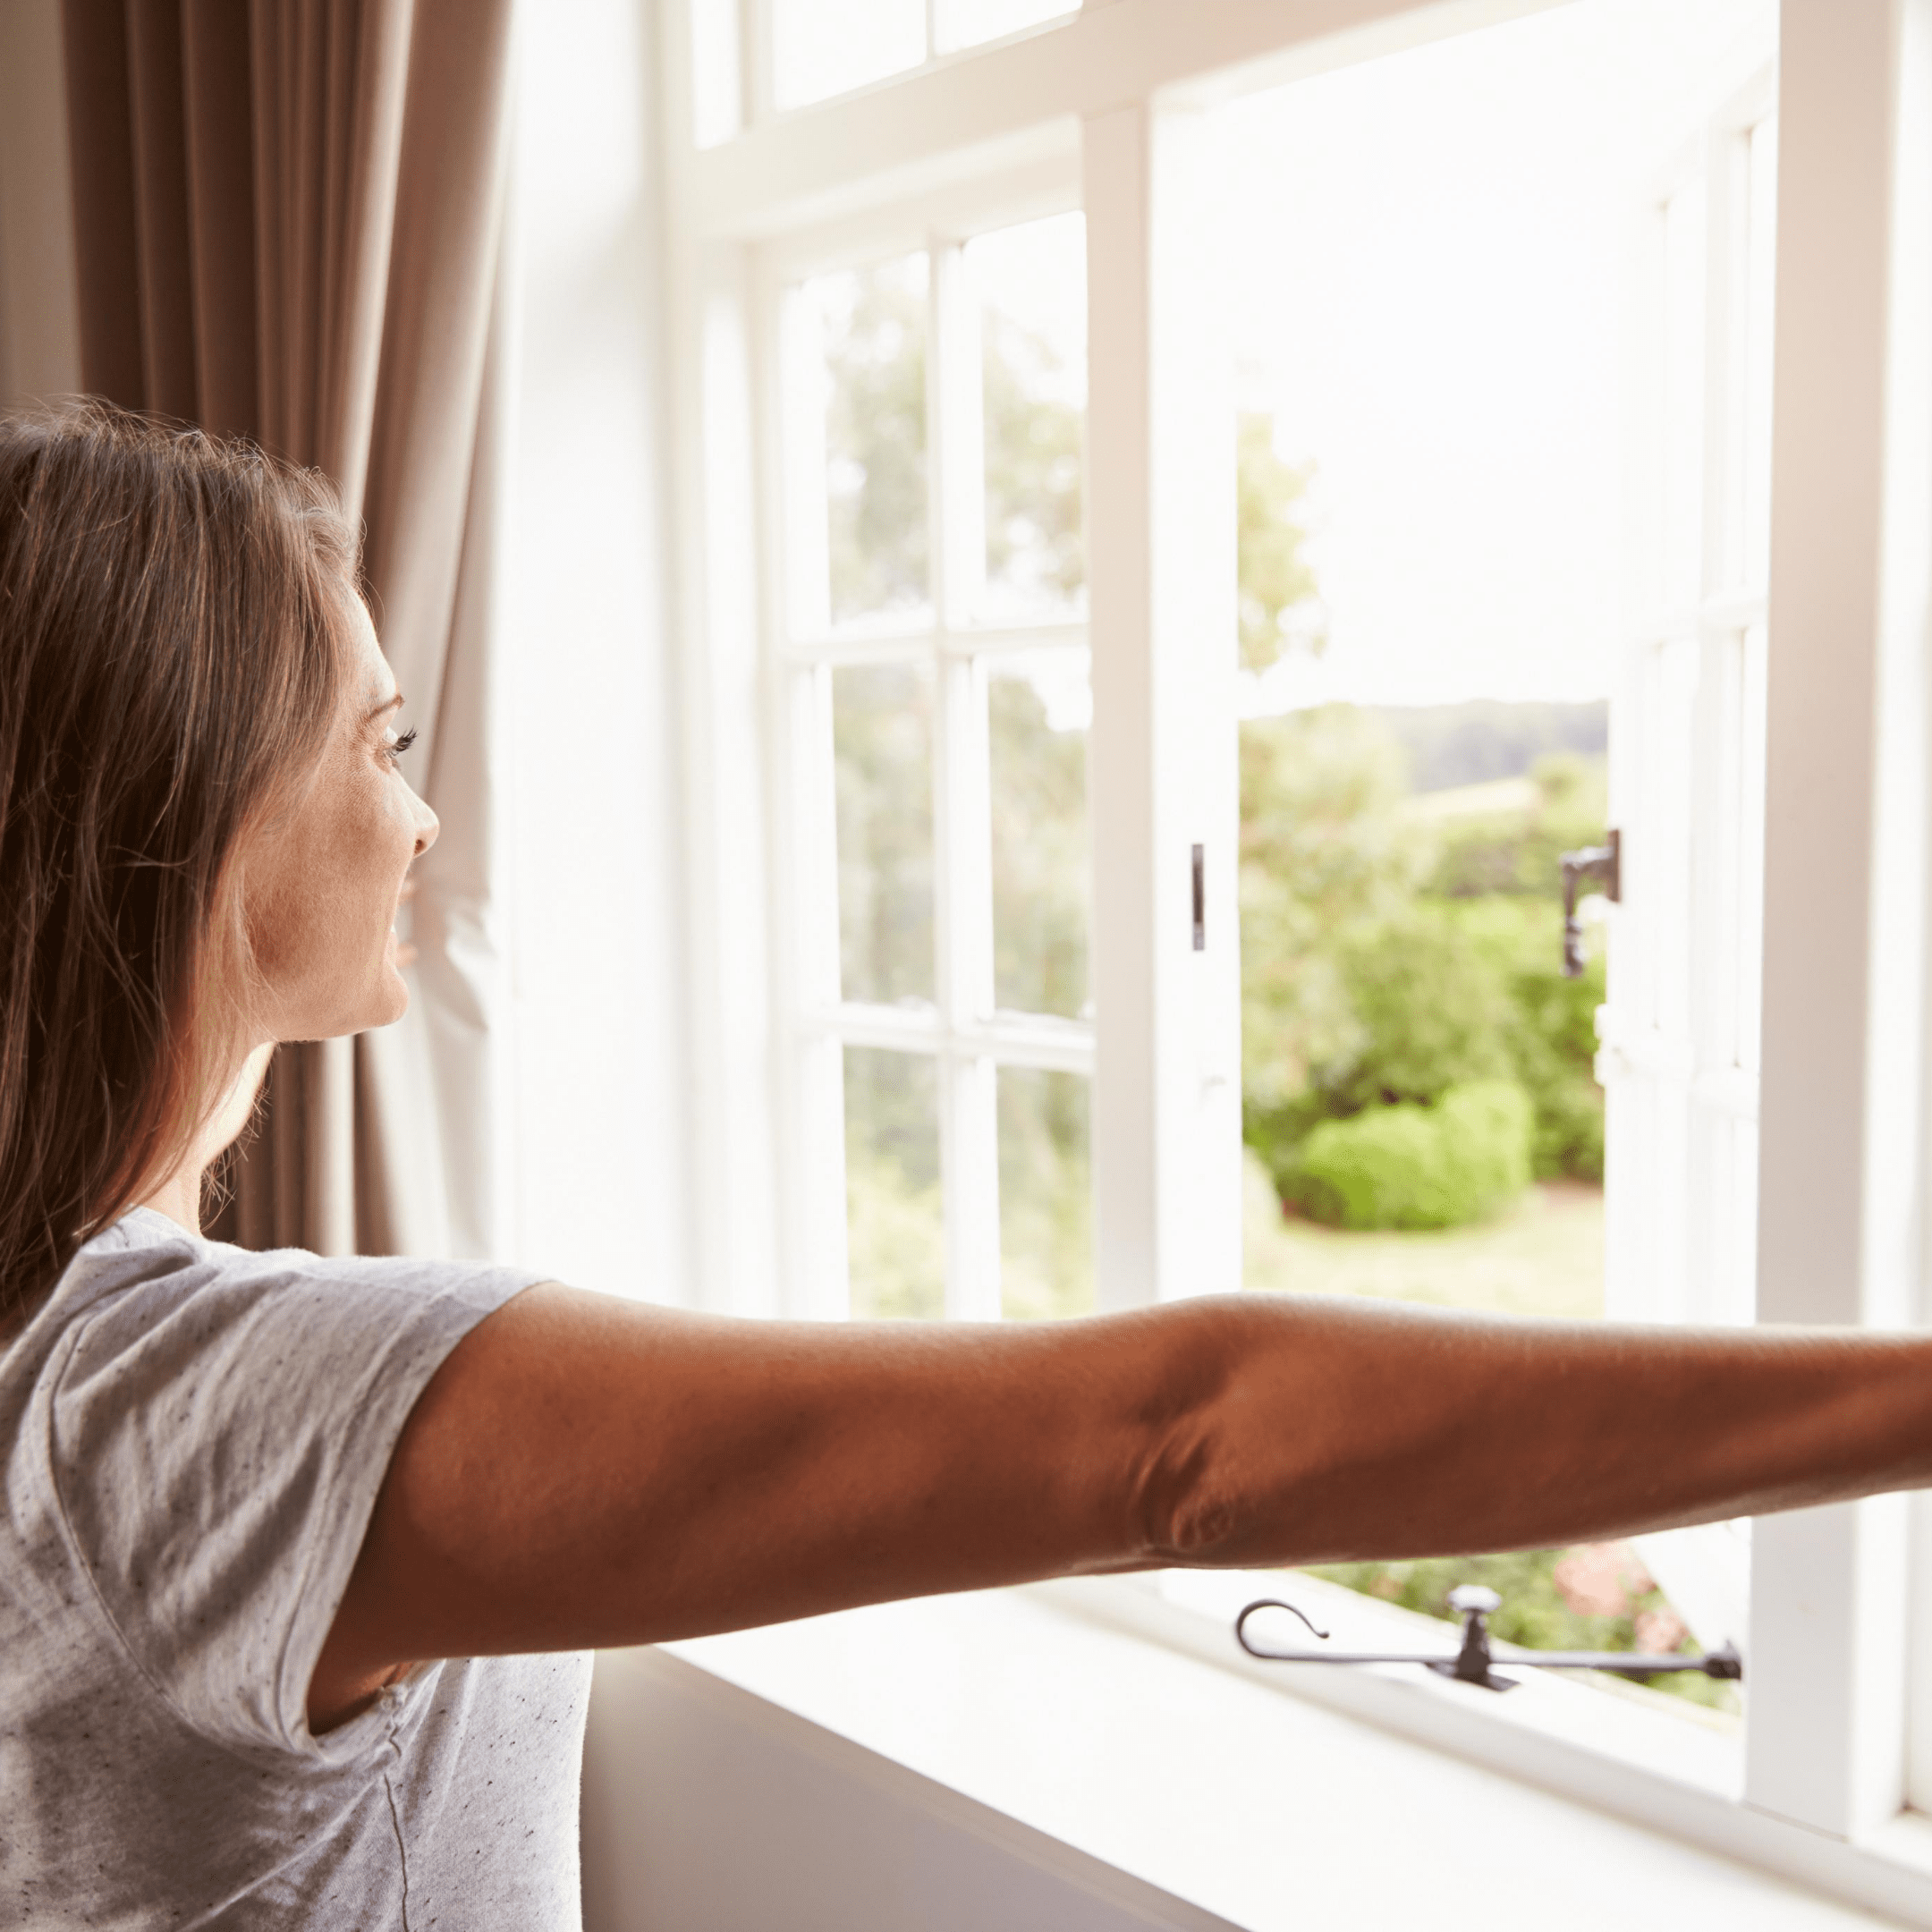 Woman opening window to improve indoor air quality in home office